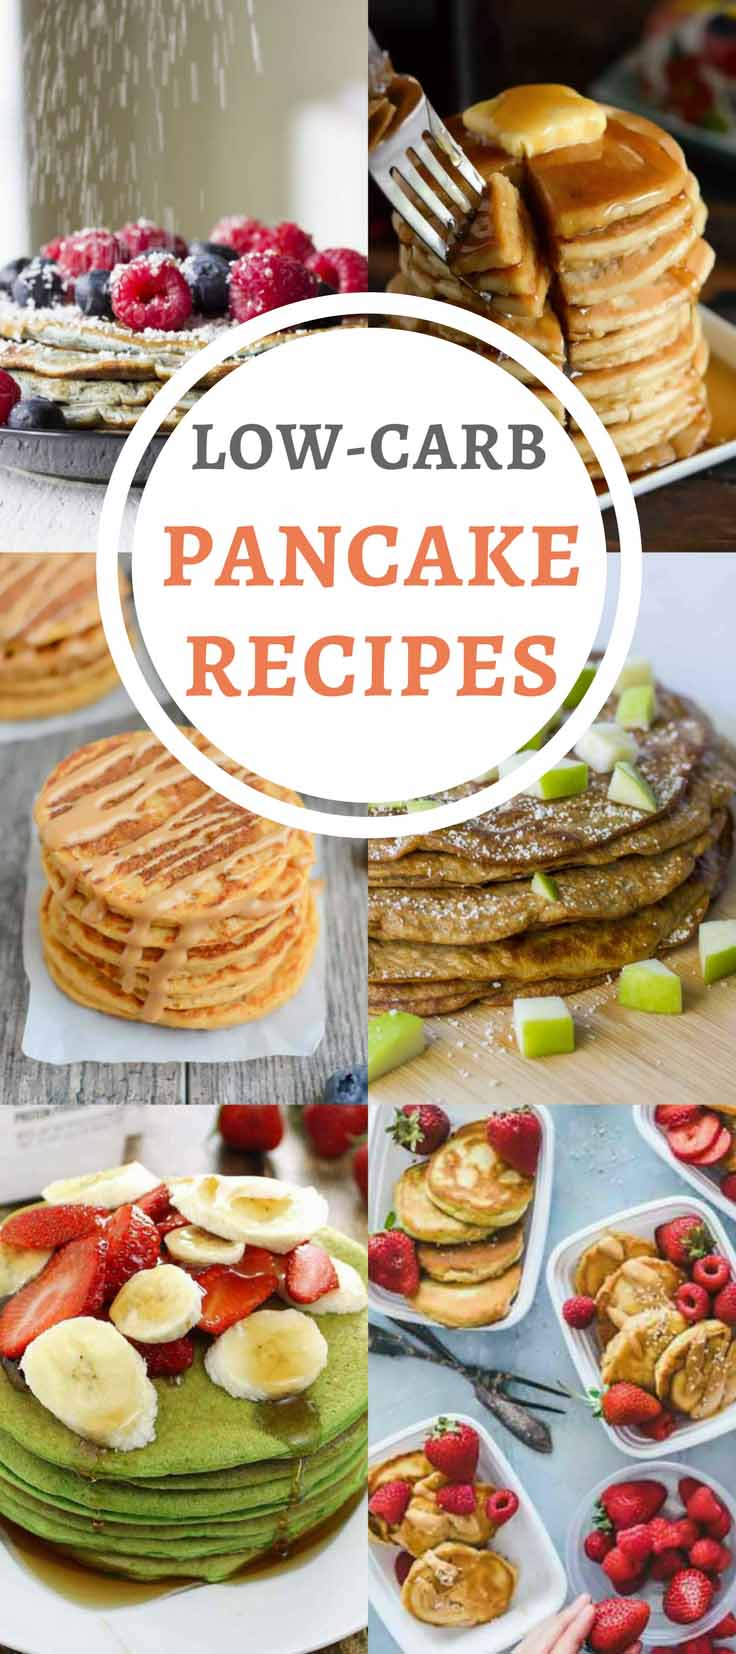 7 diabetes friendly pancake recipes low carb diabetes strong can people with diabetes eat pancakes yes especially with these delicious low carb forumfinder Gallery